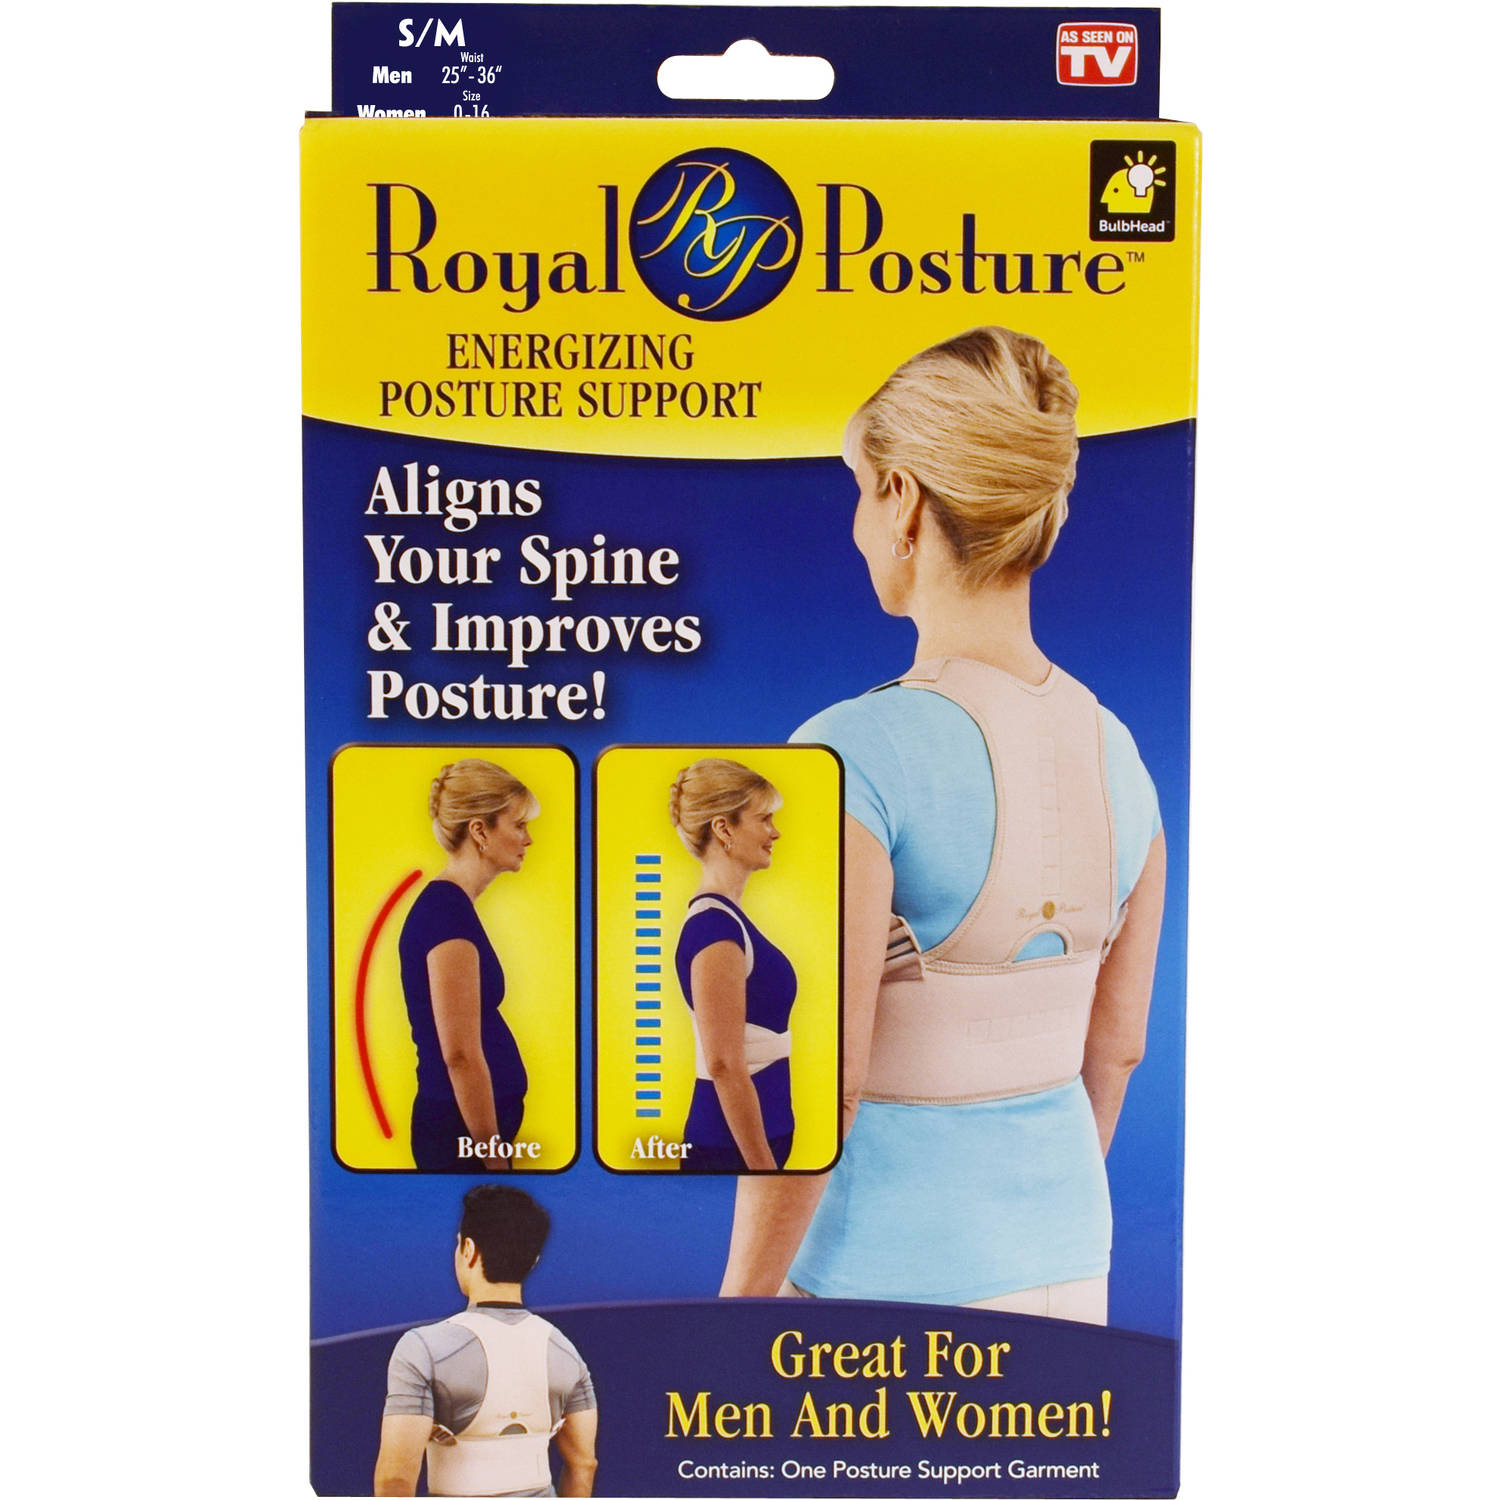 Royal Posture Back Support, S/M